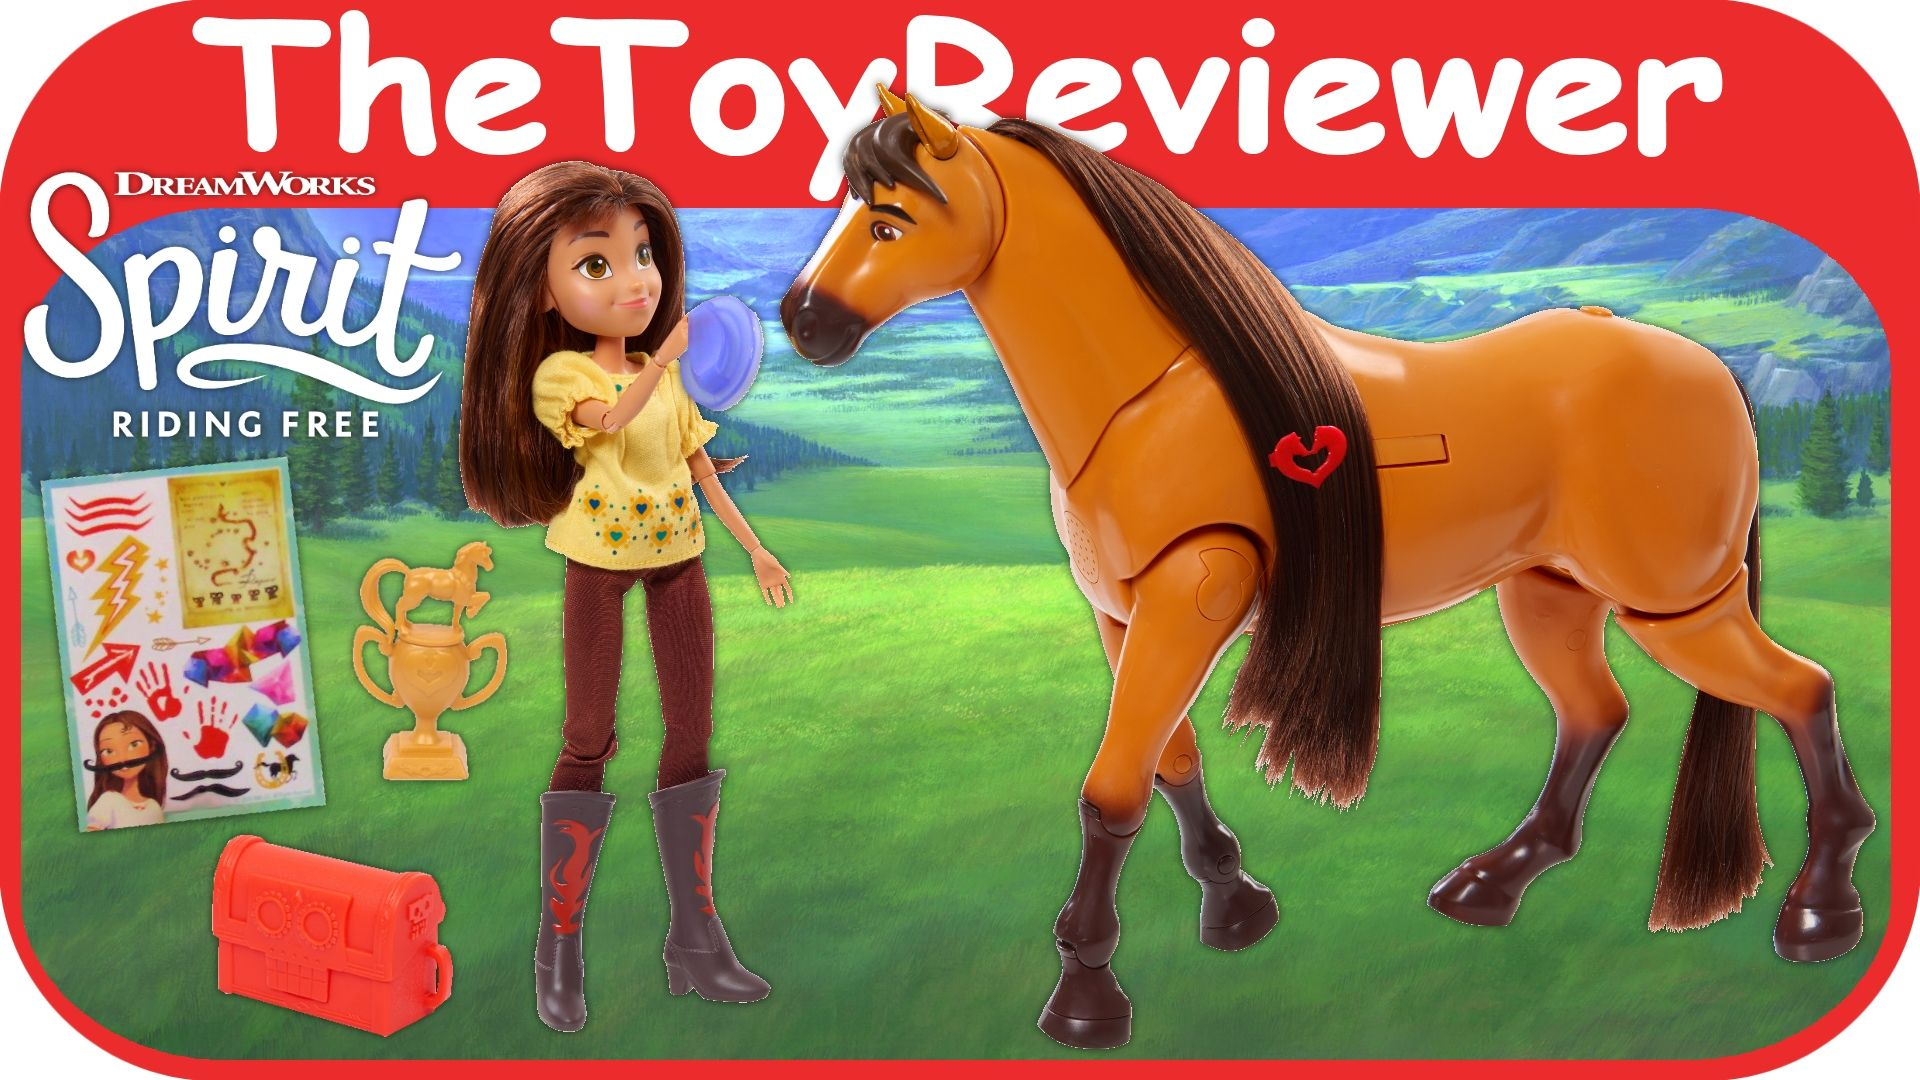 Check out the Spirit Riding Free Deluxe Walking Spirit and